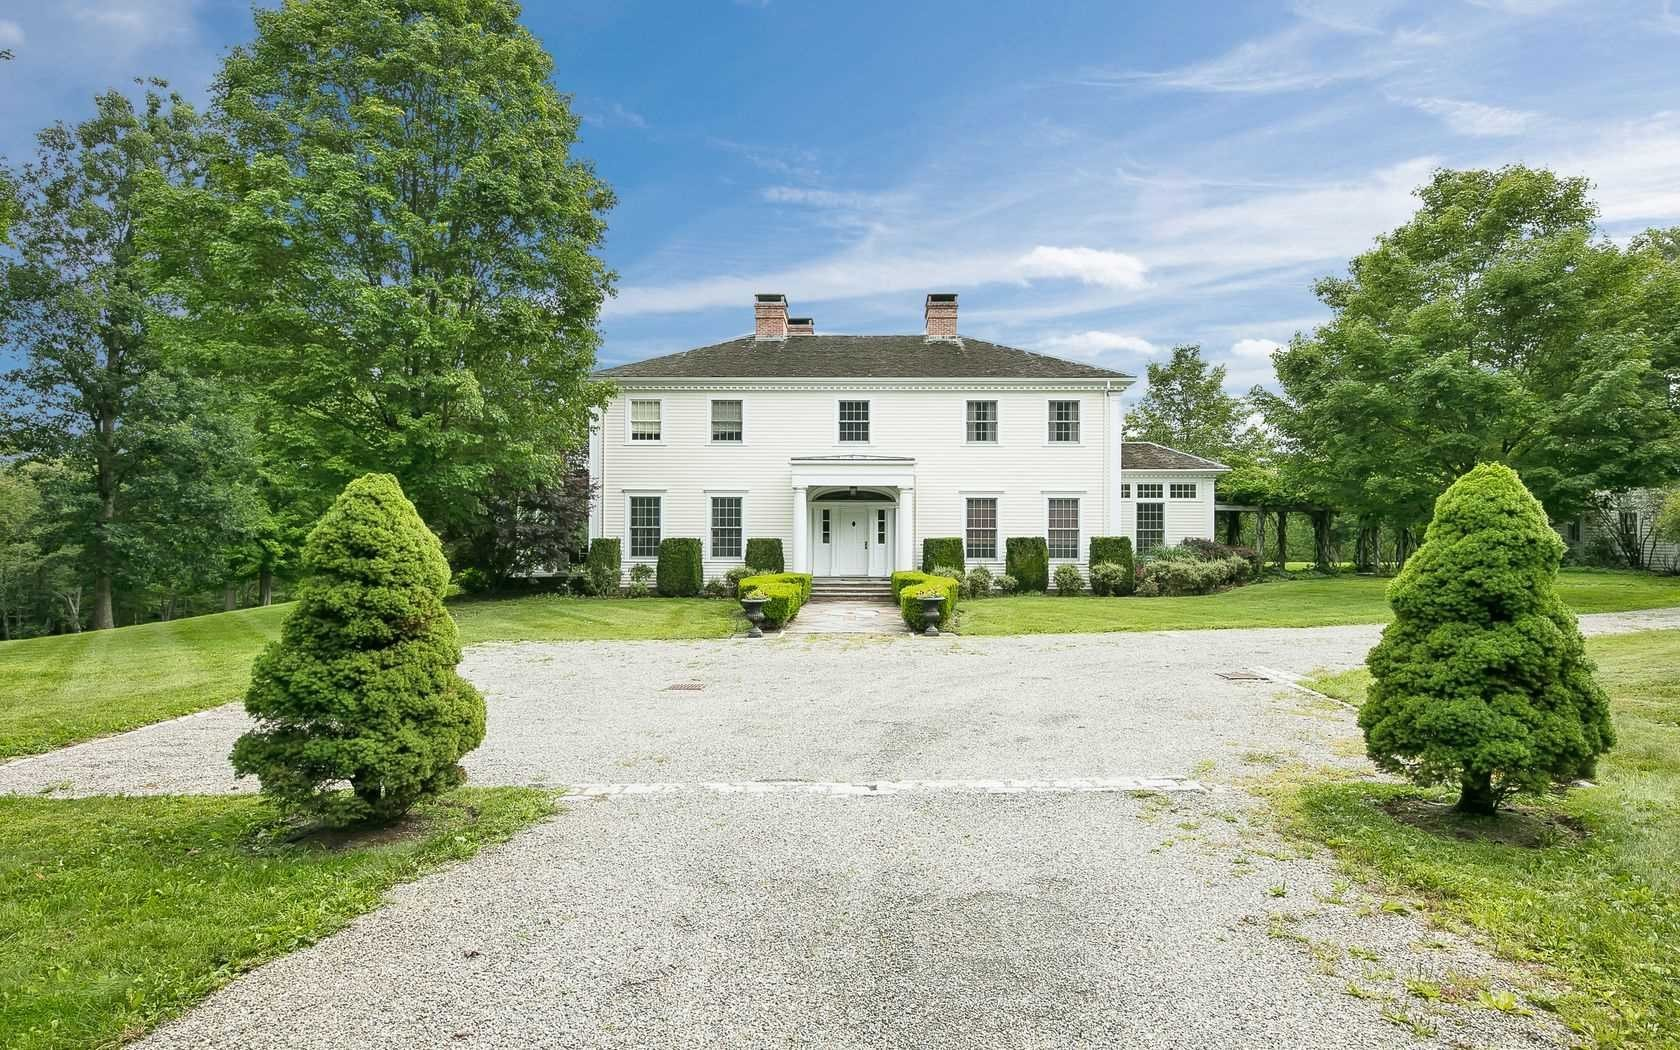 Single Family Home for Sale at 250 BANGALL Road 250 BANGALL Road Washington, New York 12545 United States